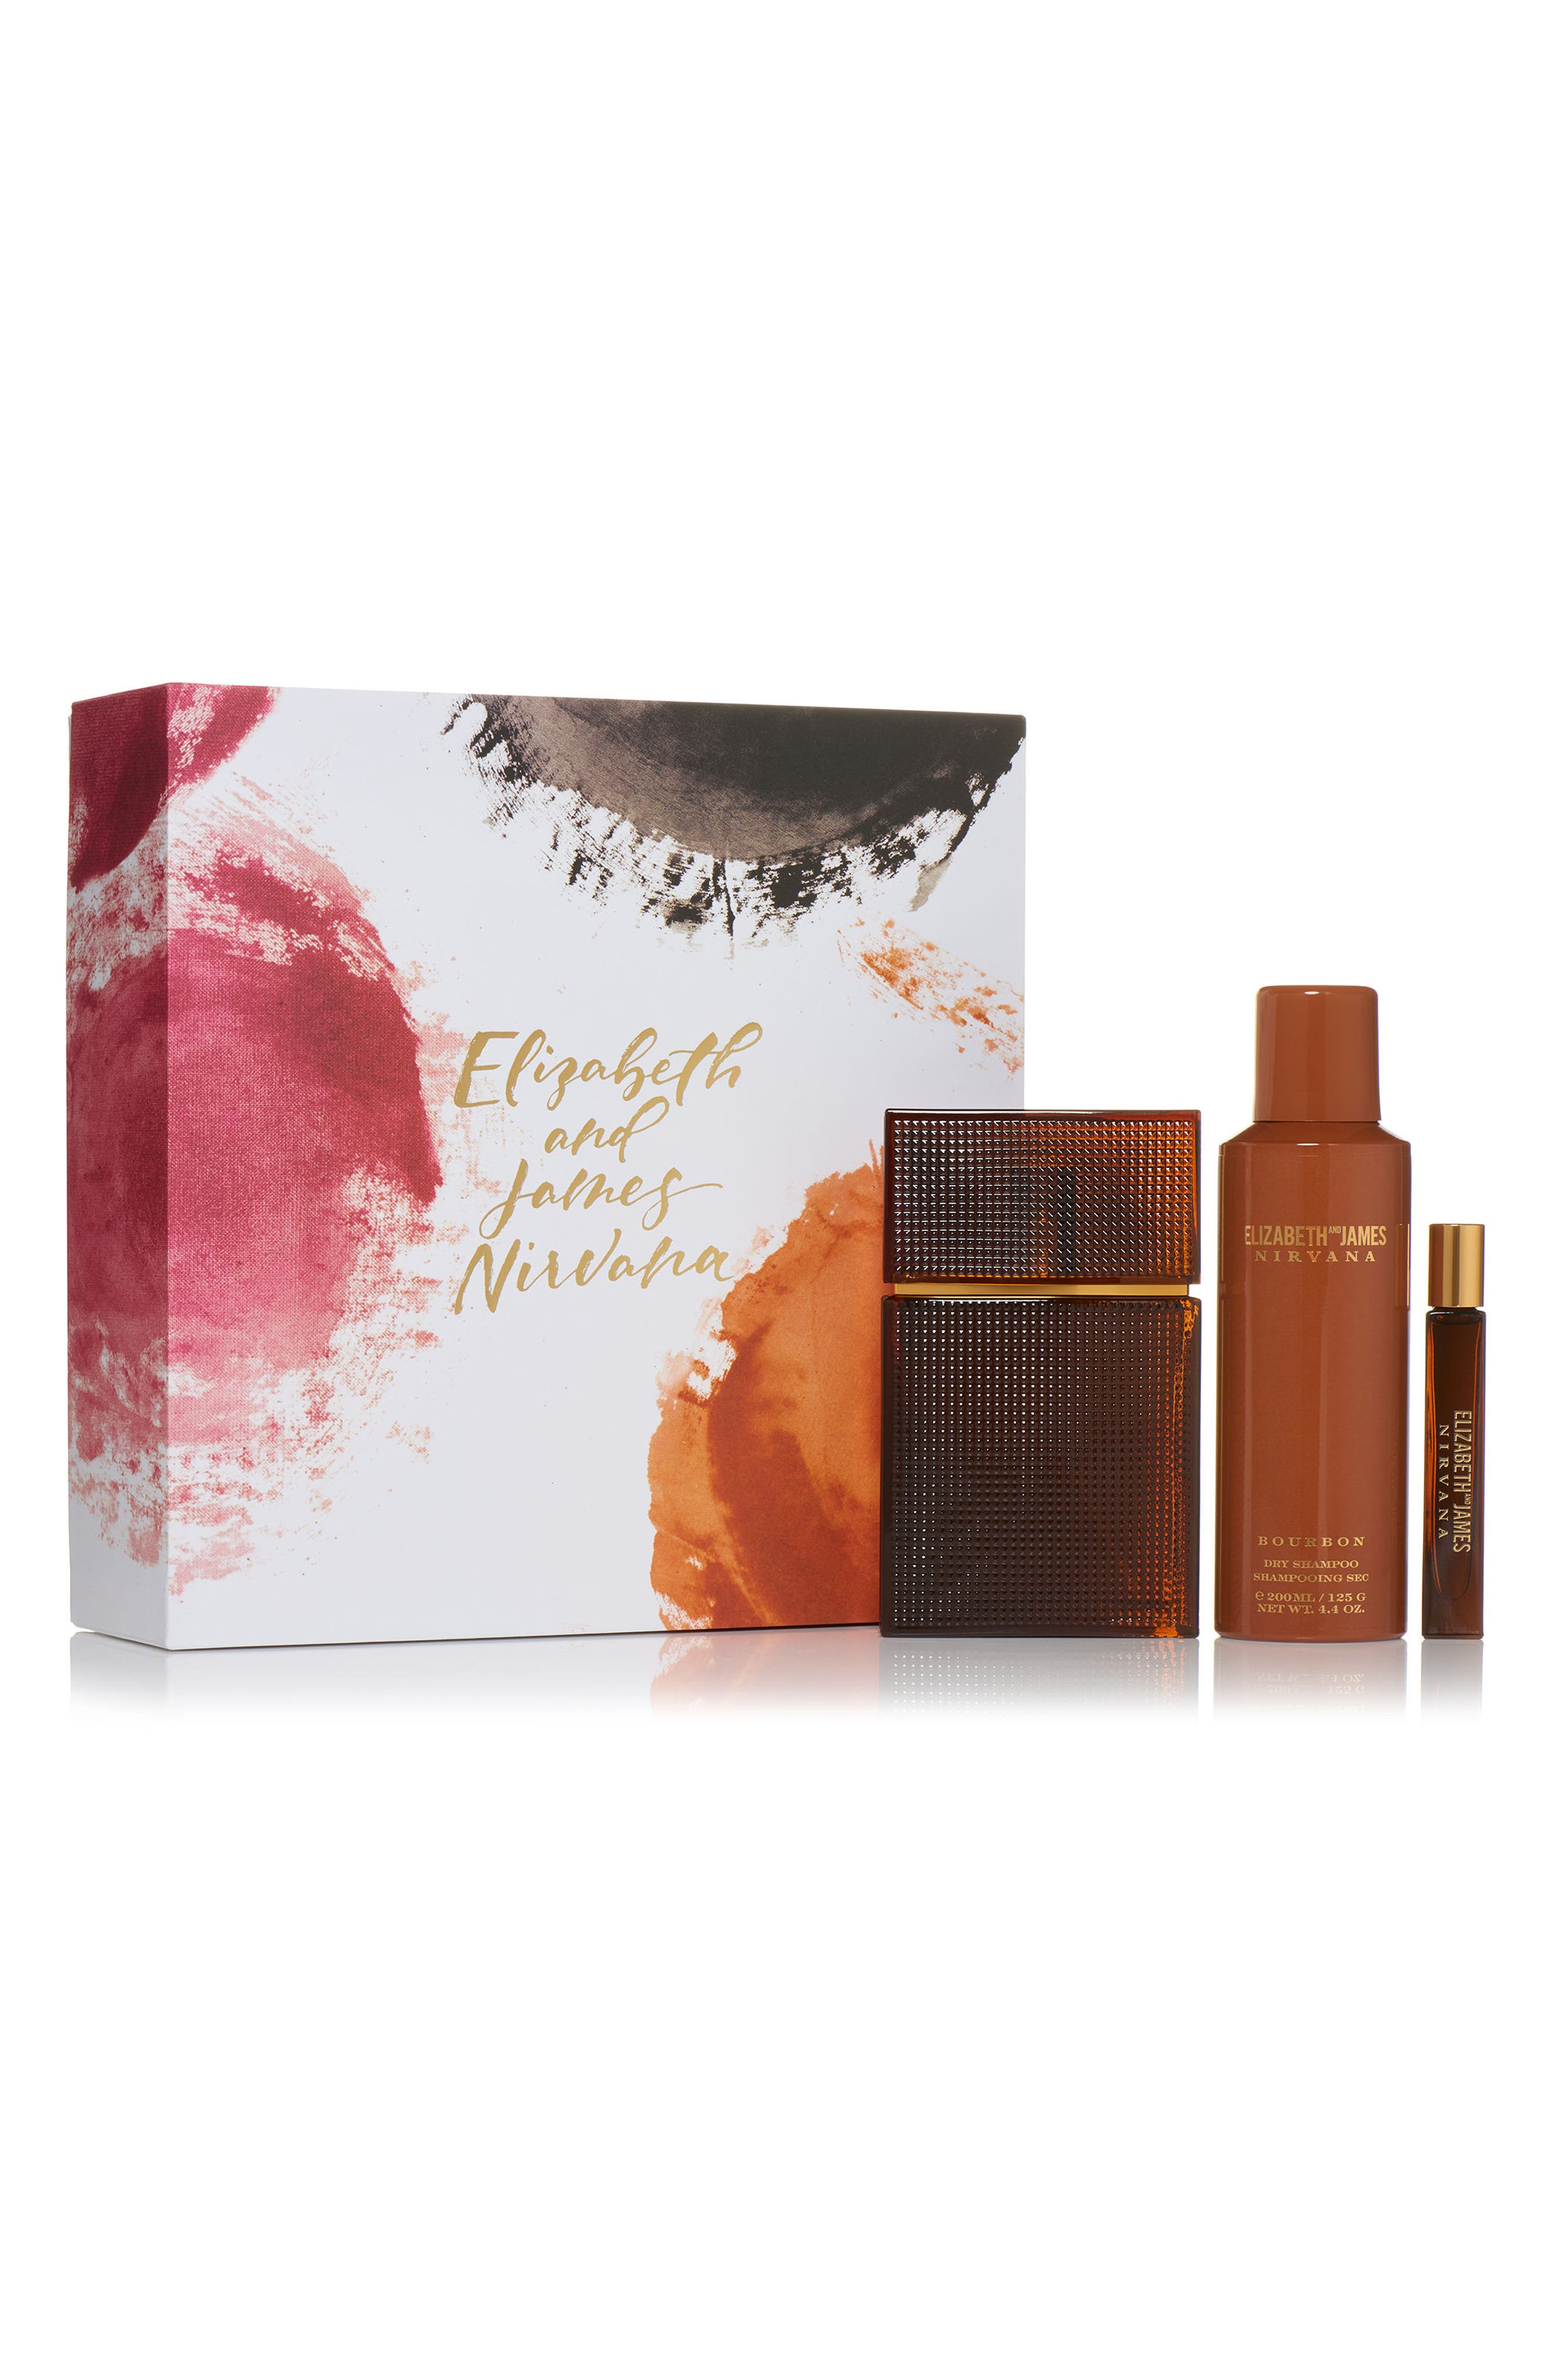 Elizabeth and James Nirvana Bourbon Set ($163 Value)